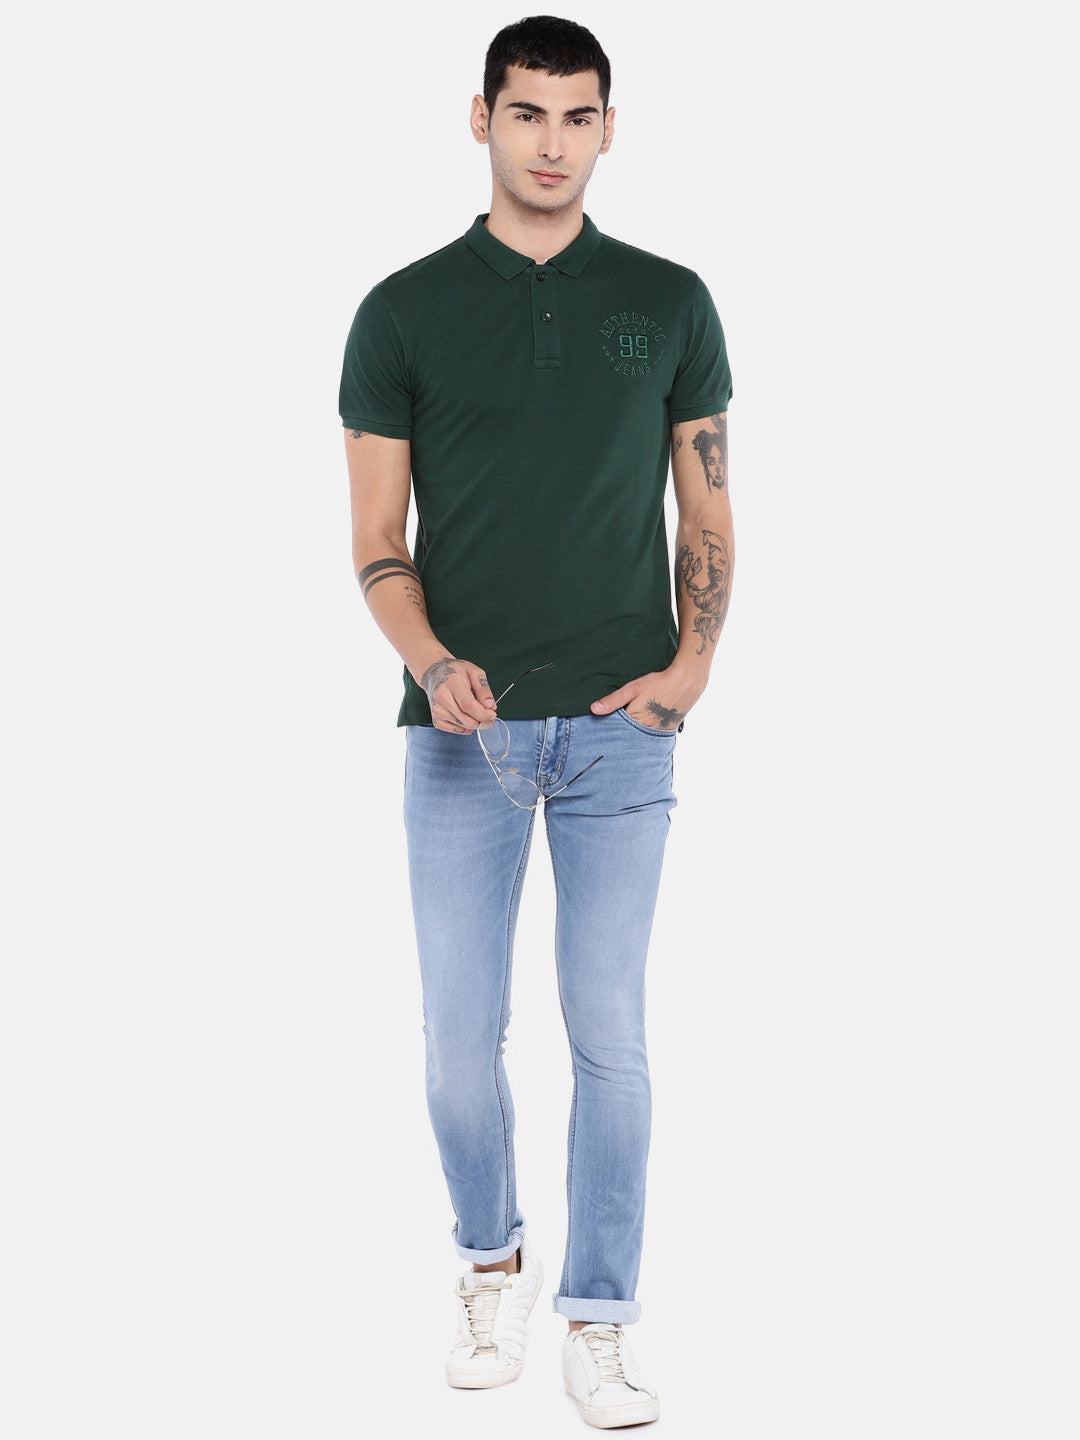 Green Solid Polo Collar T-shirt-4